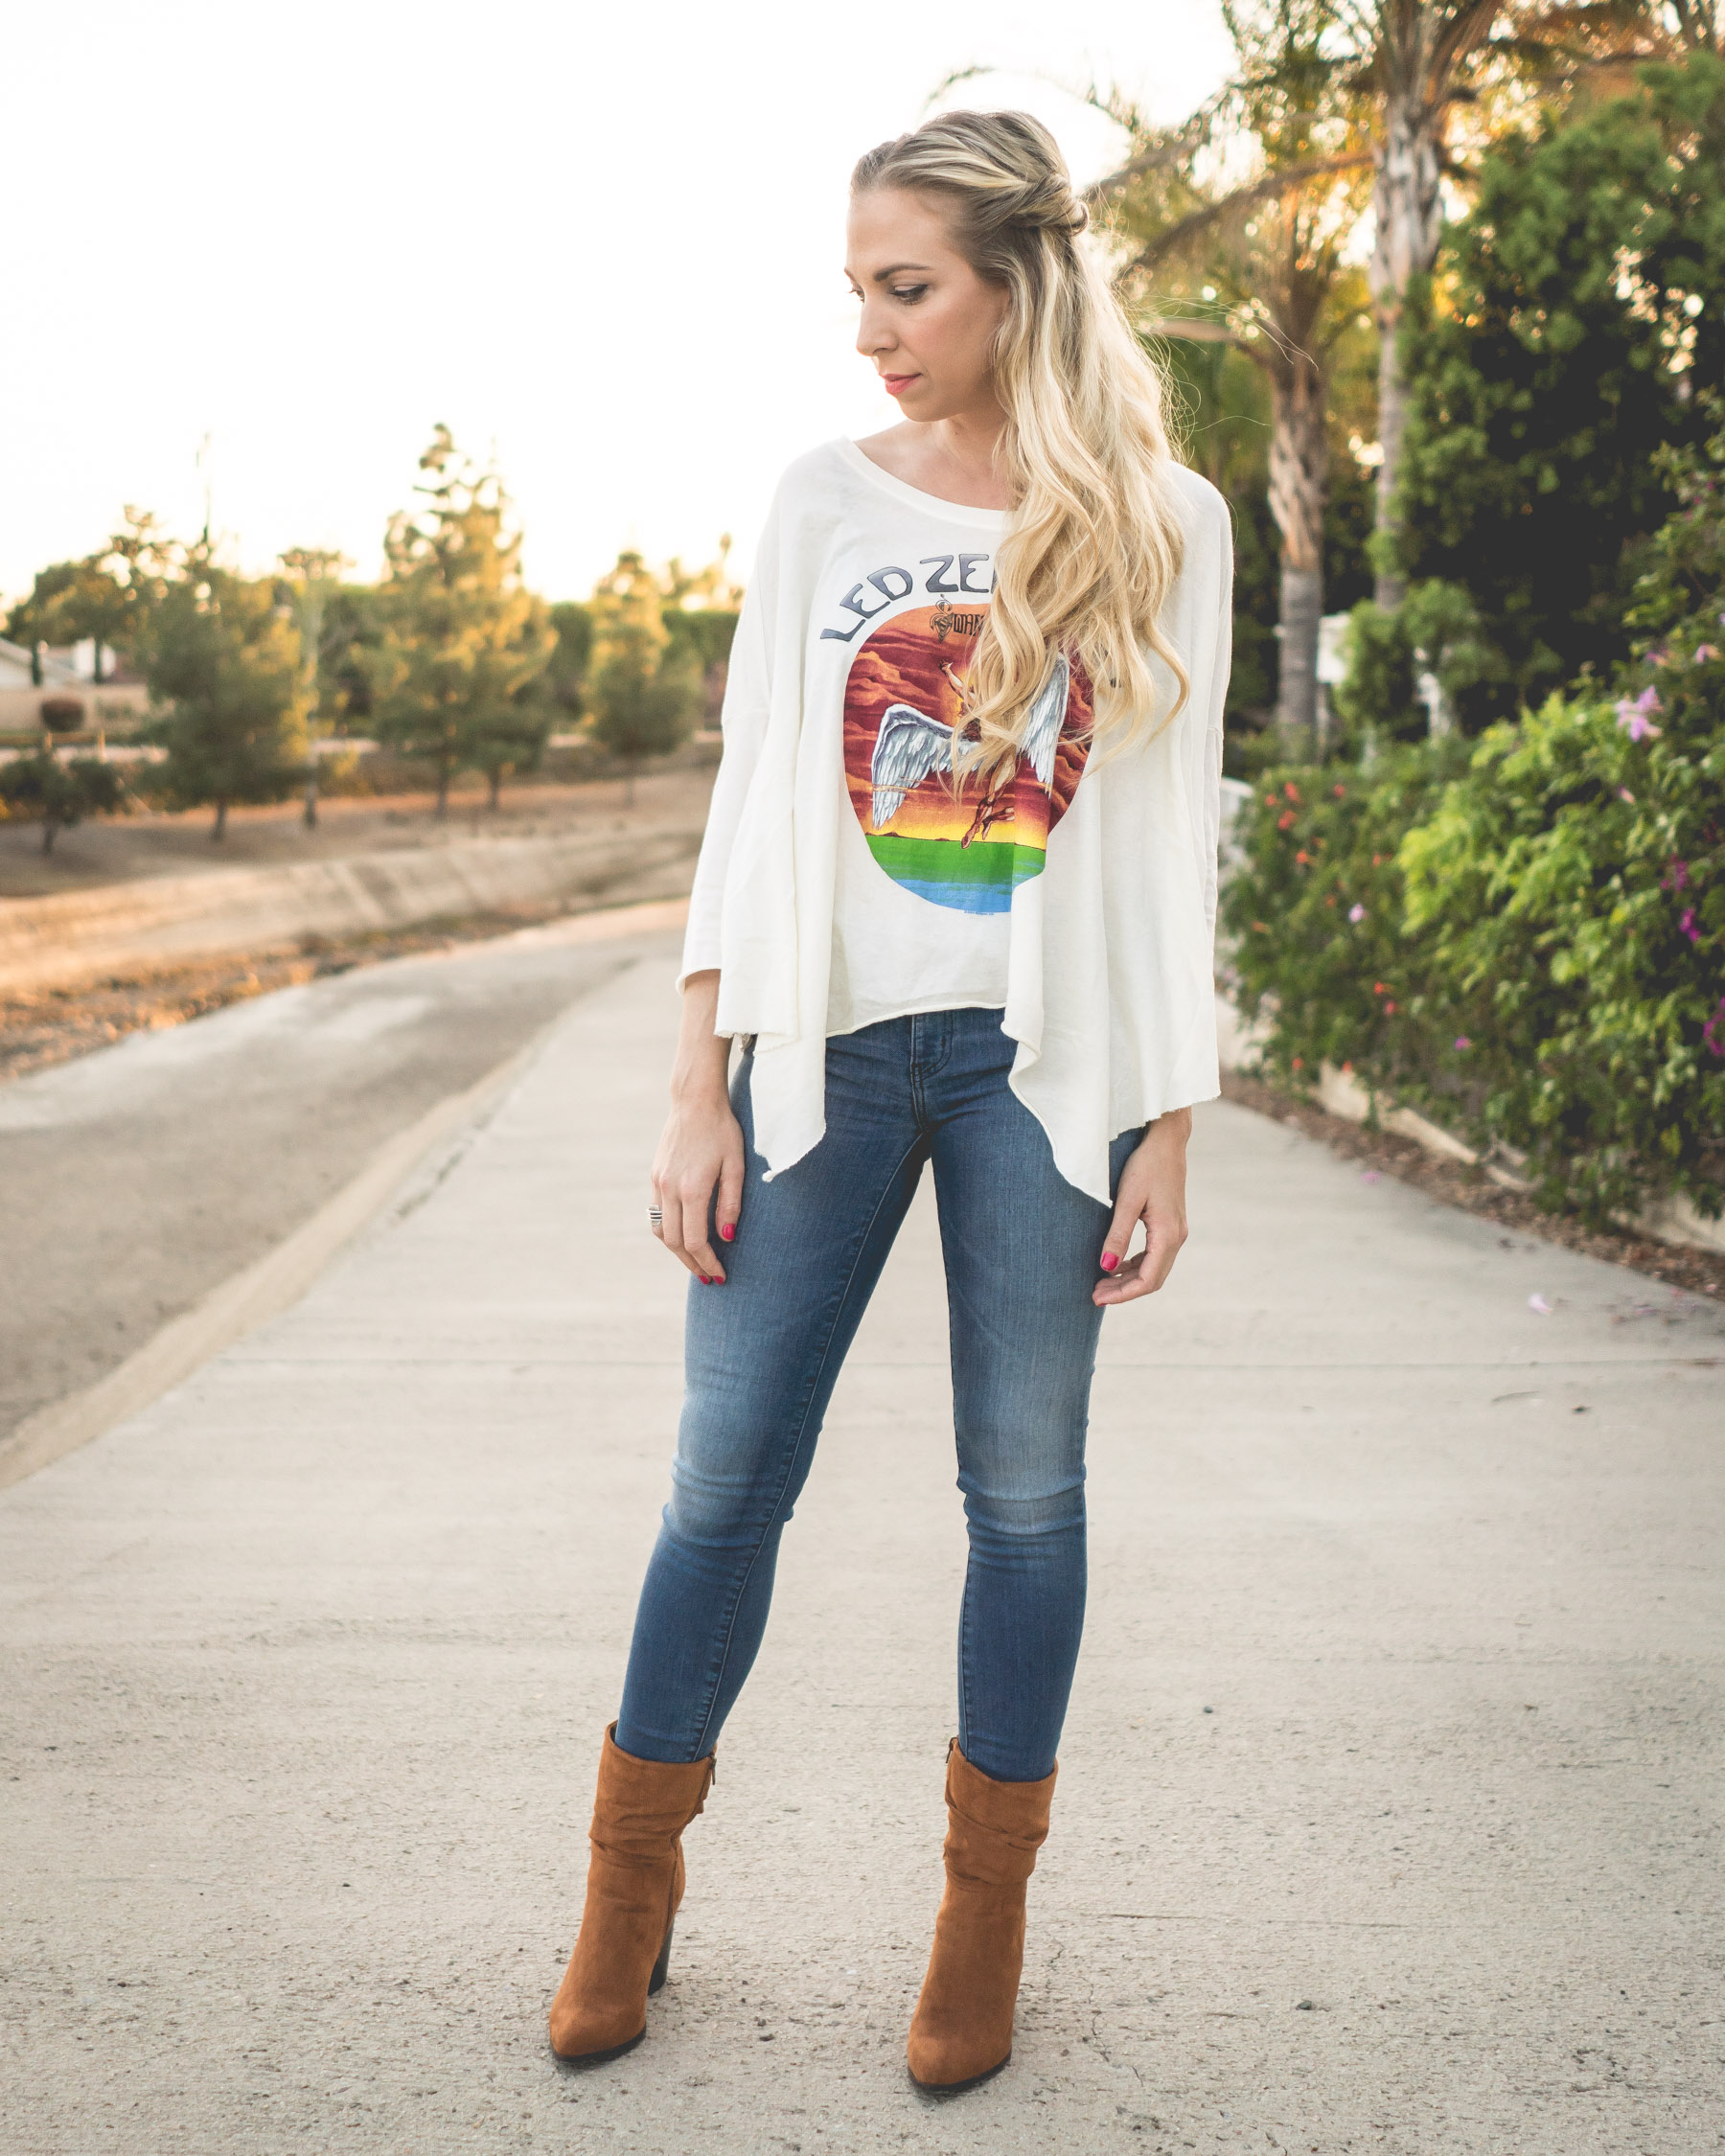 brandi-matthews-rock-rouge-hippie-shirt-10